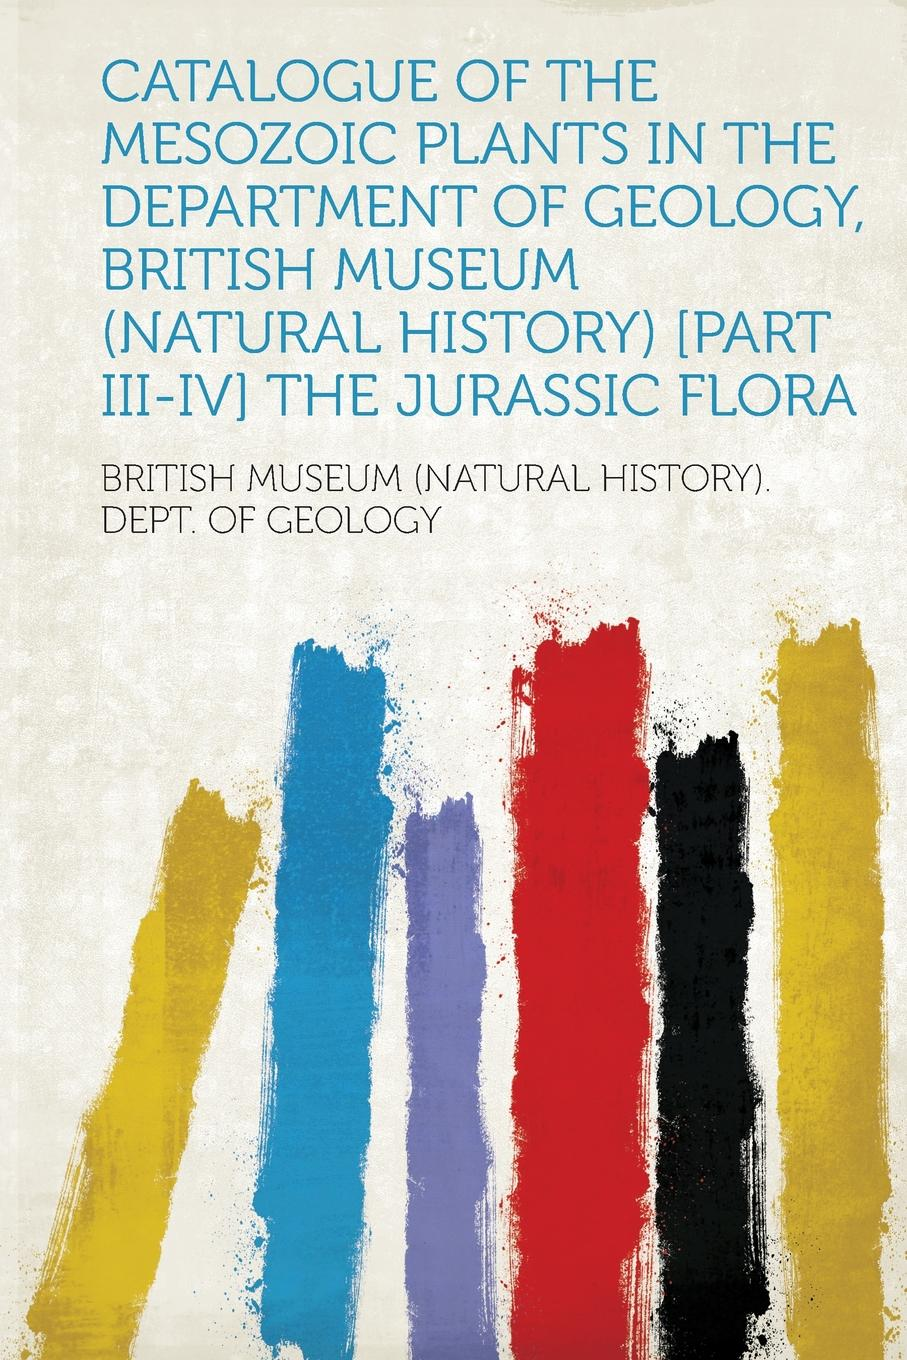 Catalogue of the Mesozoic Plants in the Department of Geology, British Museum (Natural History) .Part III-IV. The Jurassic Flora